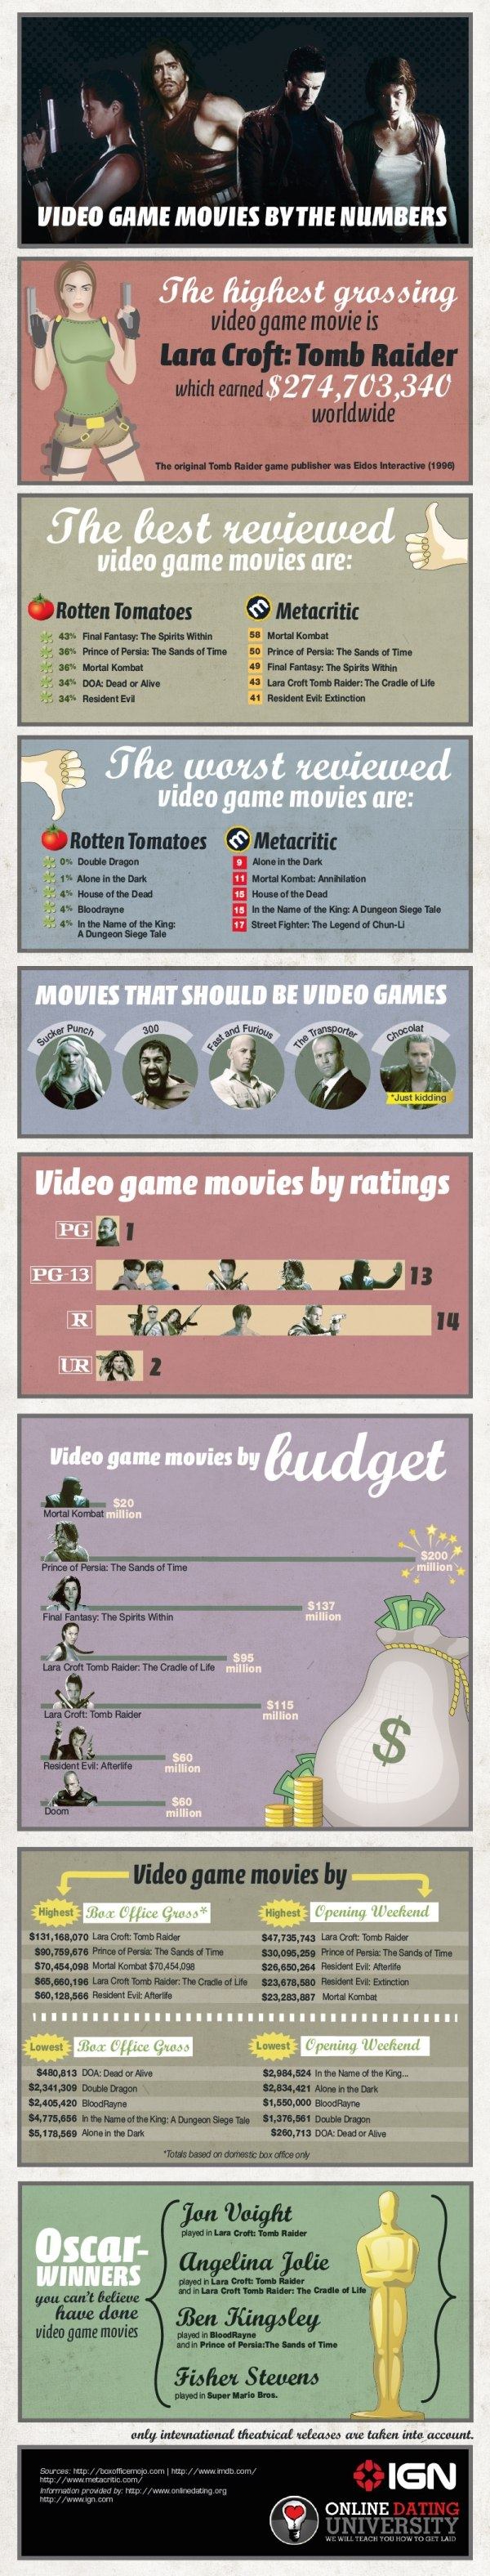 Video Game Movies: By The Numbers [Infographic]